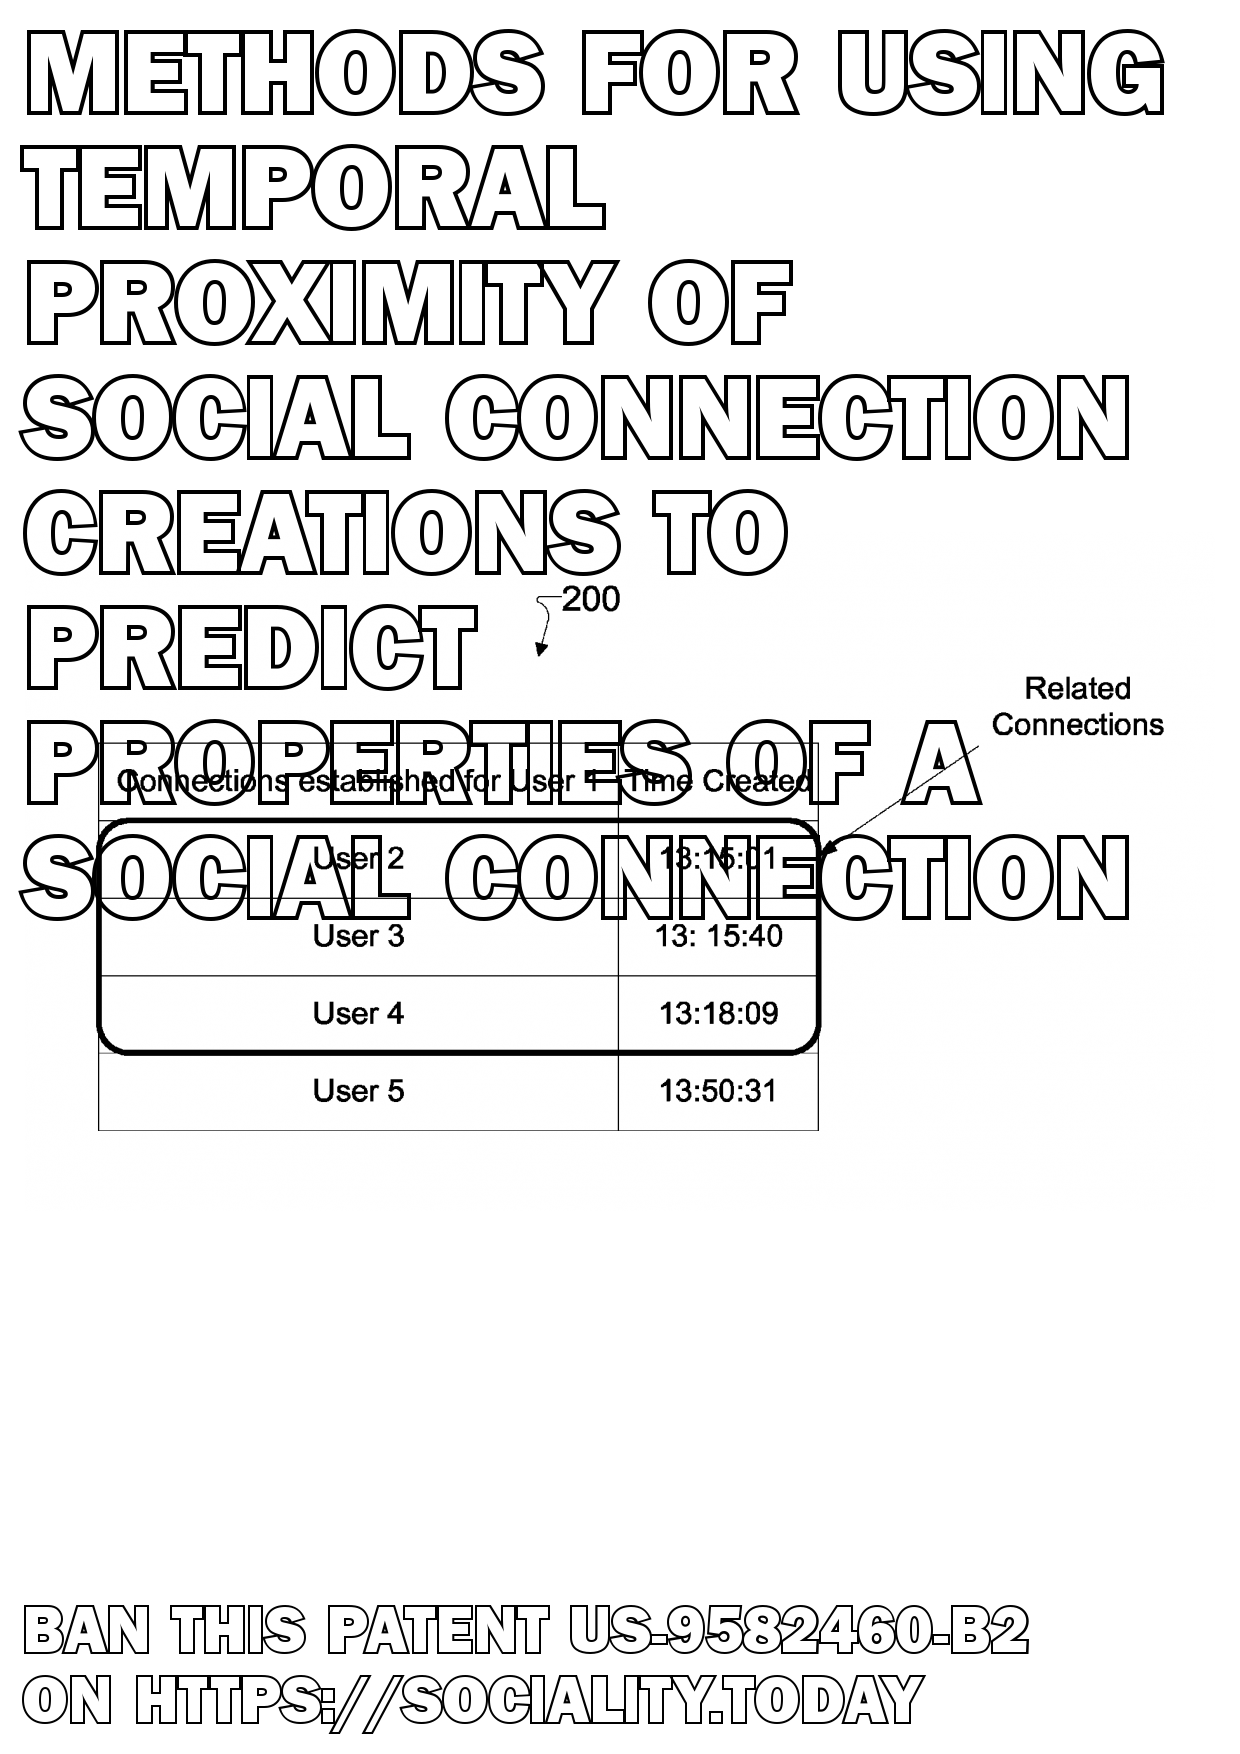 Methods for using temporal proximity of social connection creations to predict properties of a social connection  - US-9582460-B2